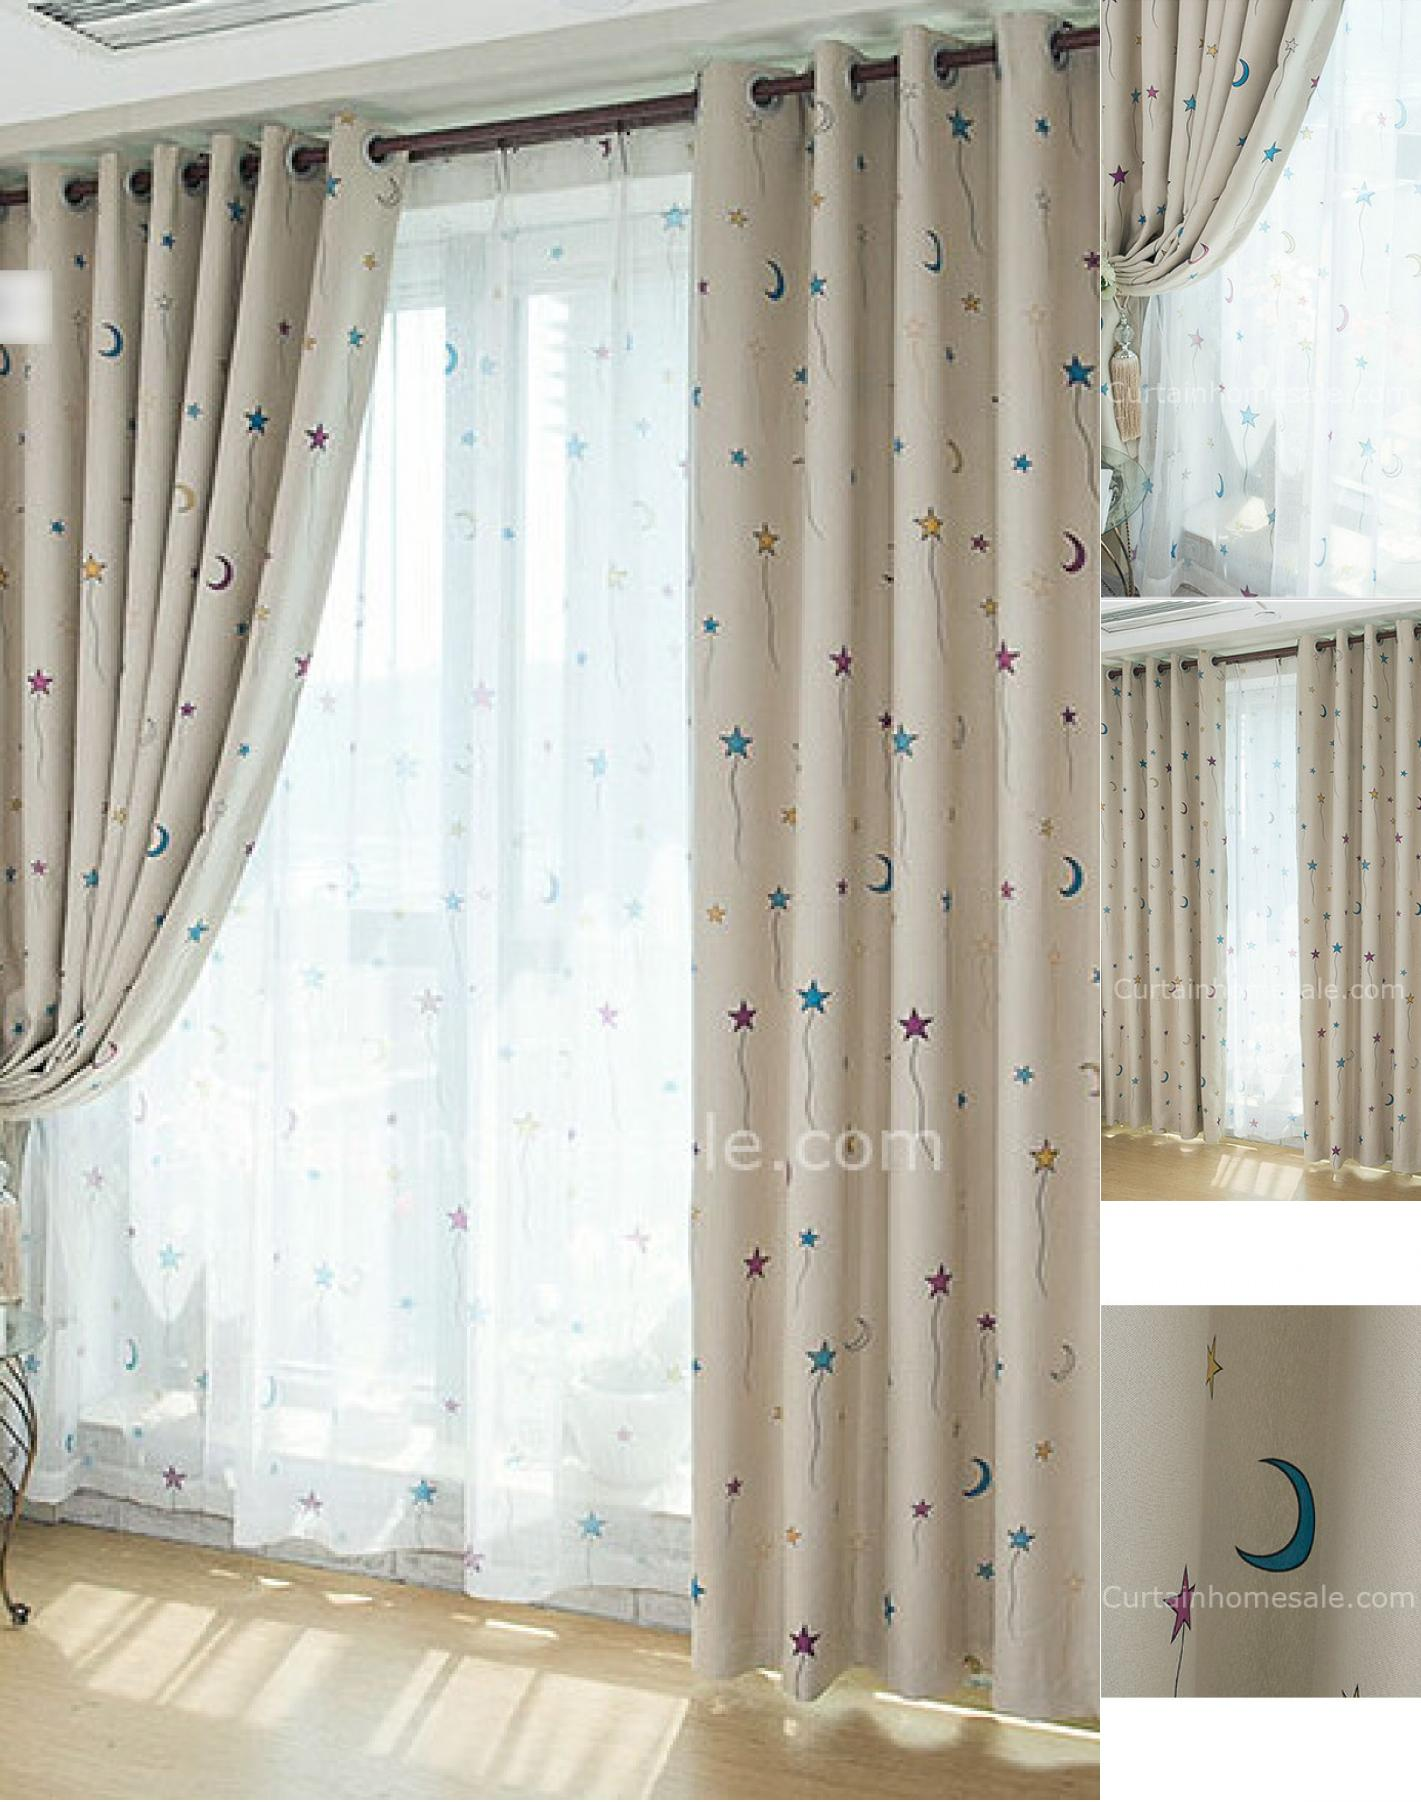 Blackout curtains nursery homesfeed for Curtain fabric for baby nursery